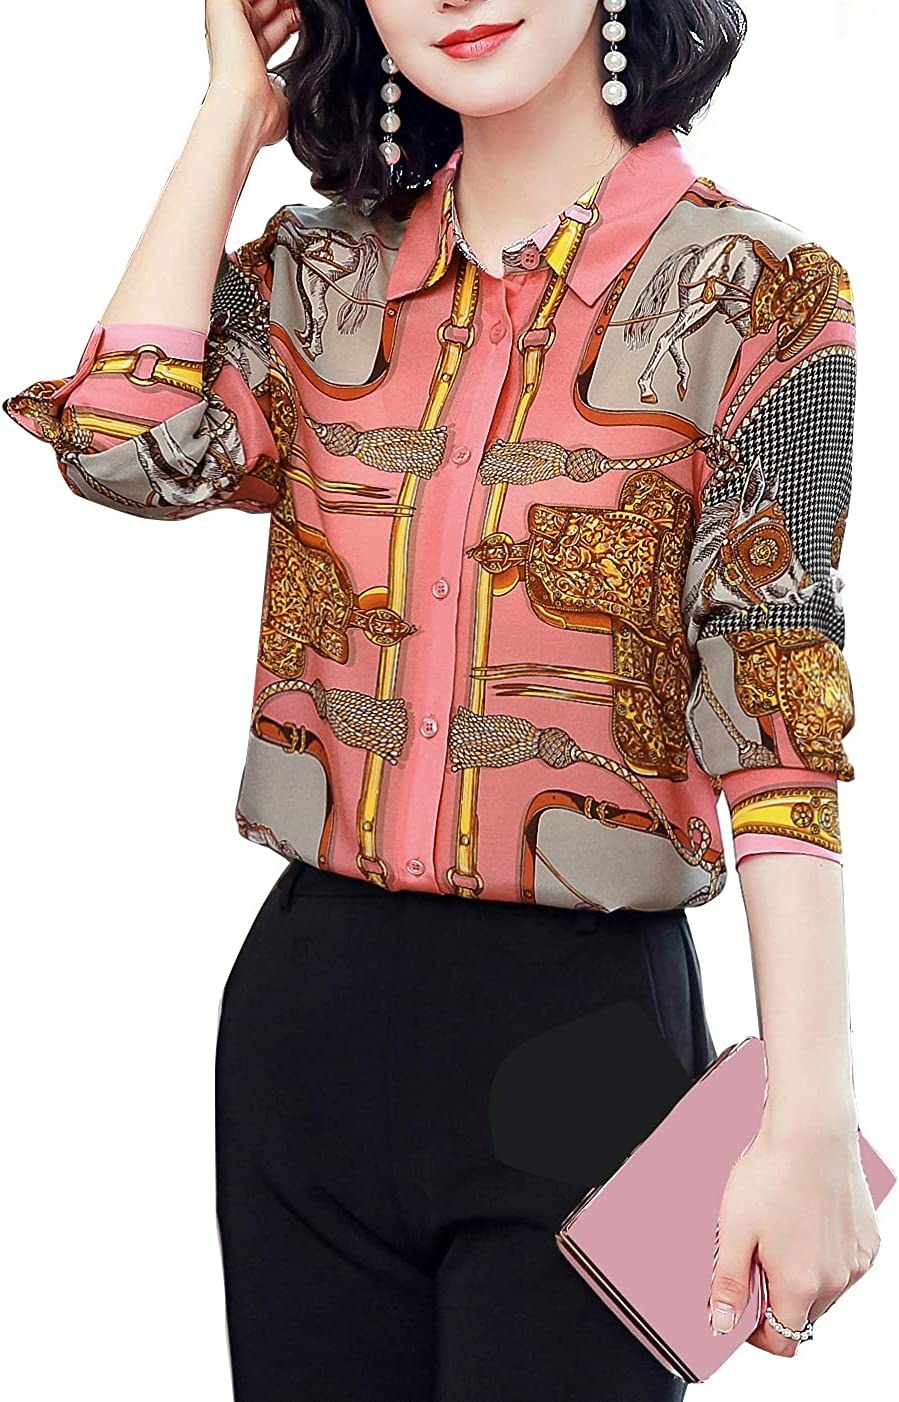 Blouses for Women's Elegant Printed Long Sleeve Shirts Button Down Casual Tops